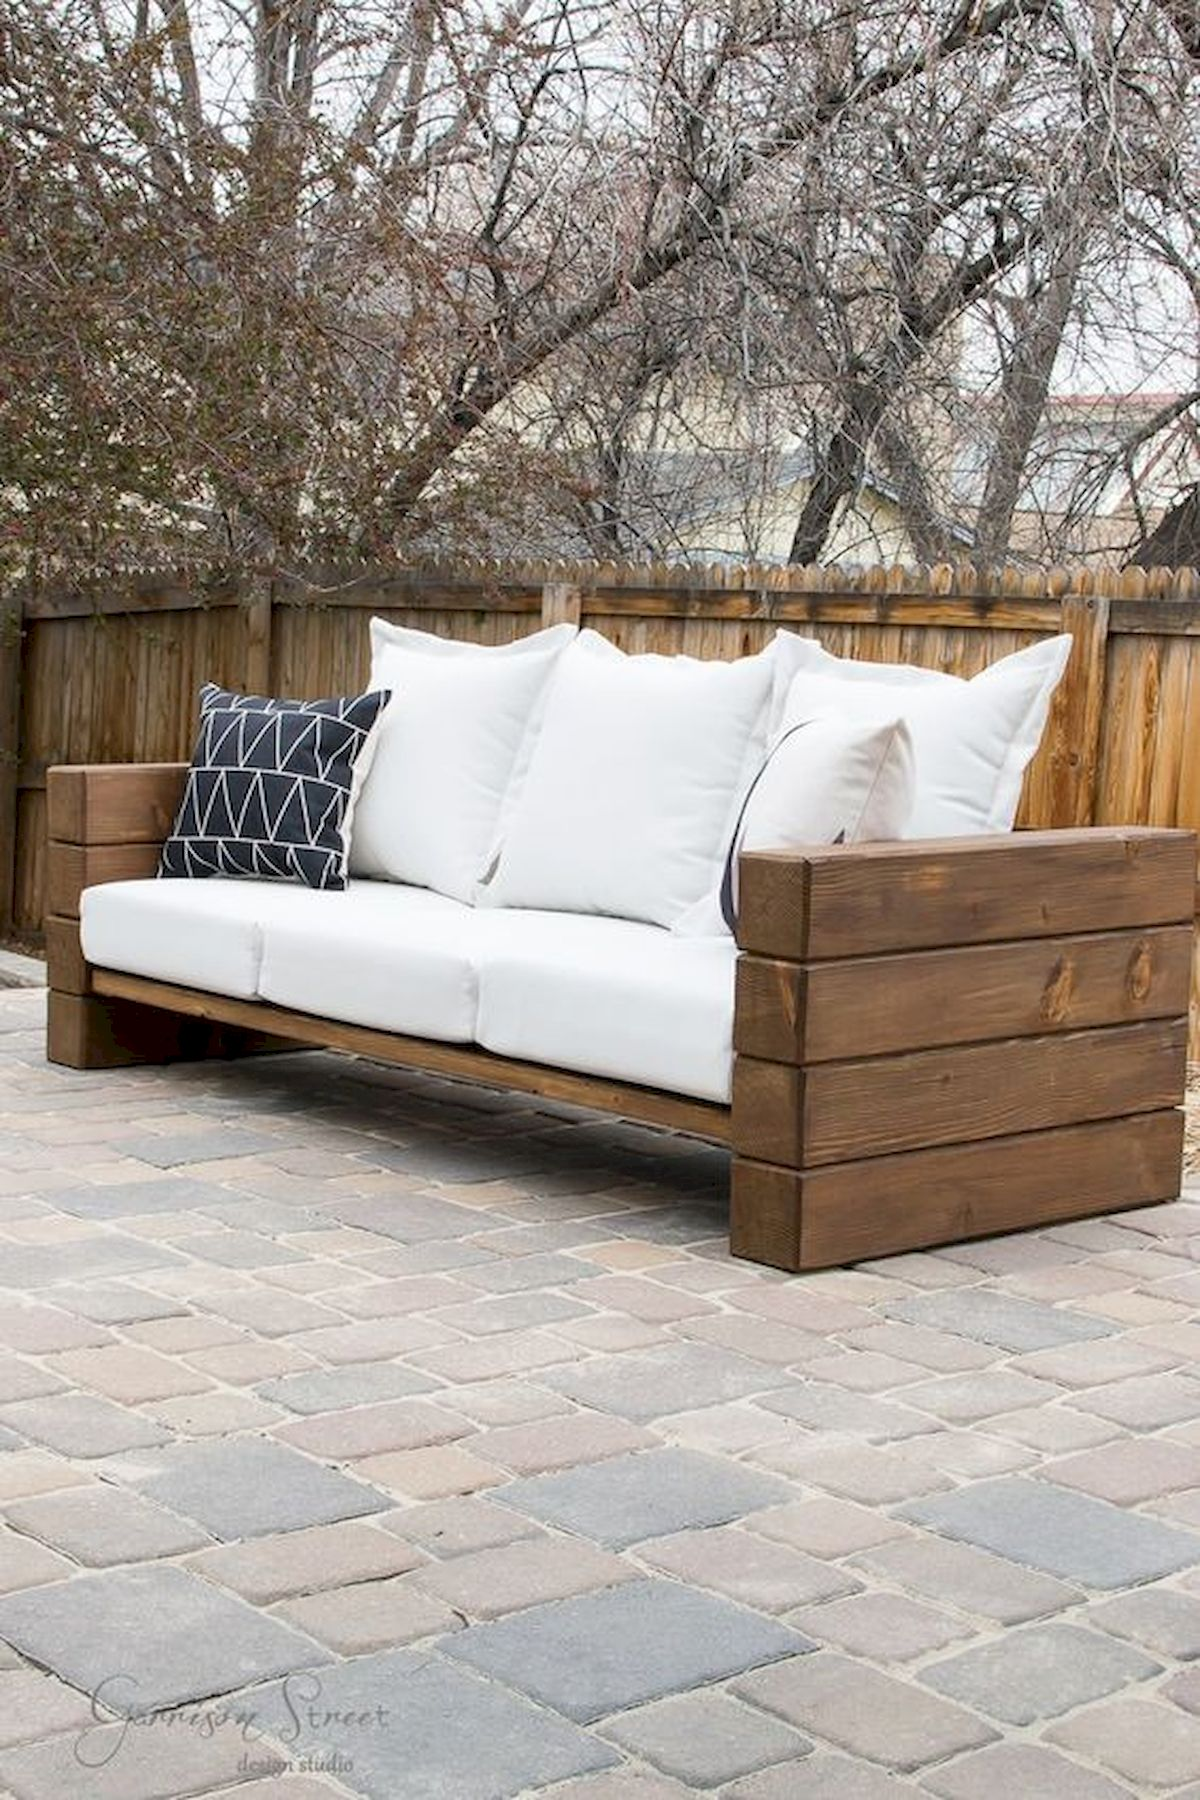 50 Amazing DIY Projects Outdoor Furniture Design Ideas (49)